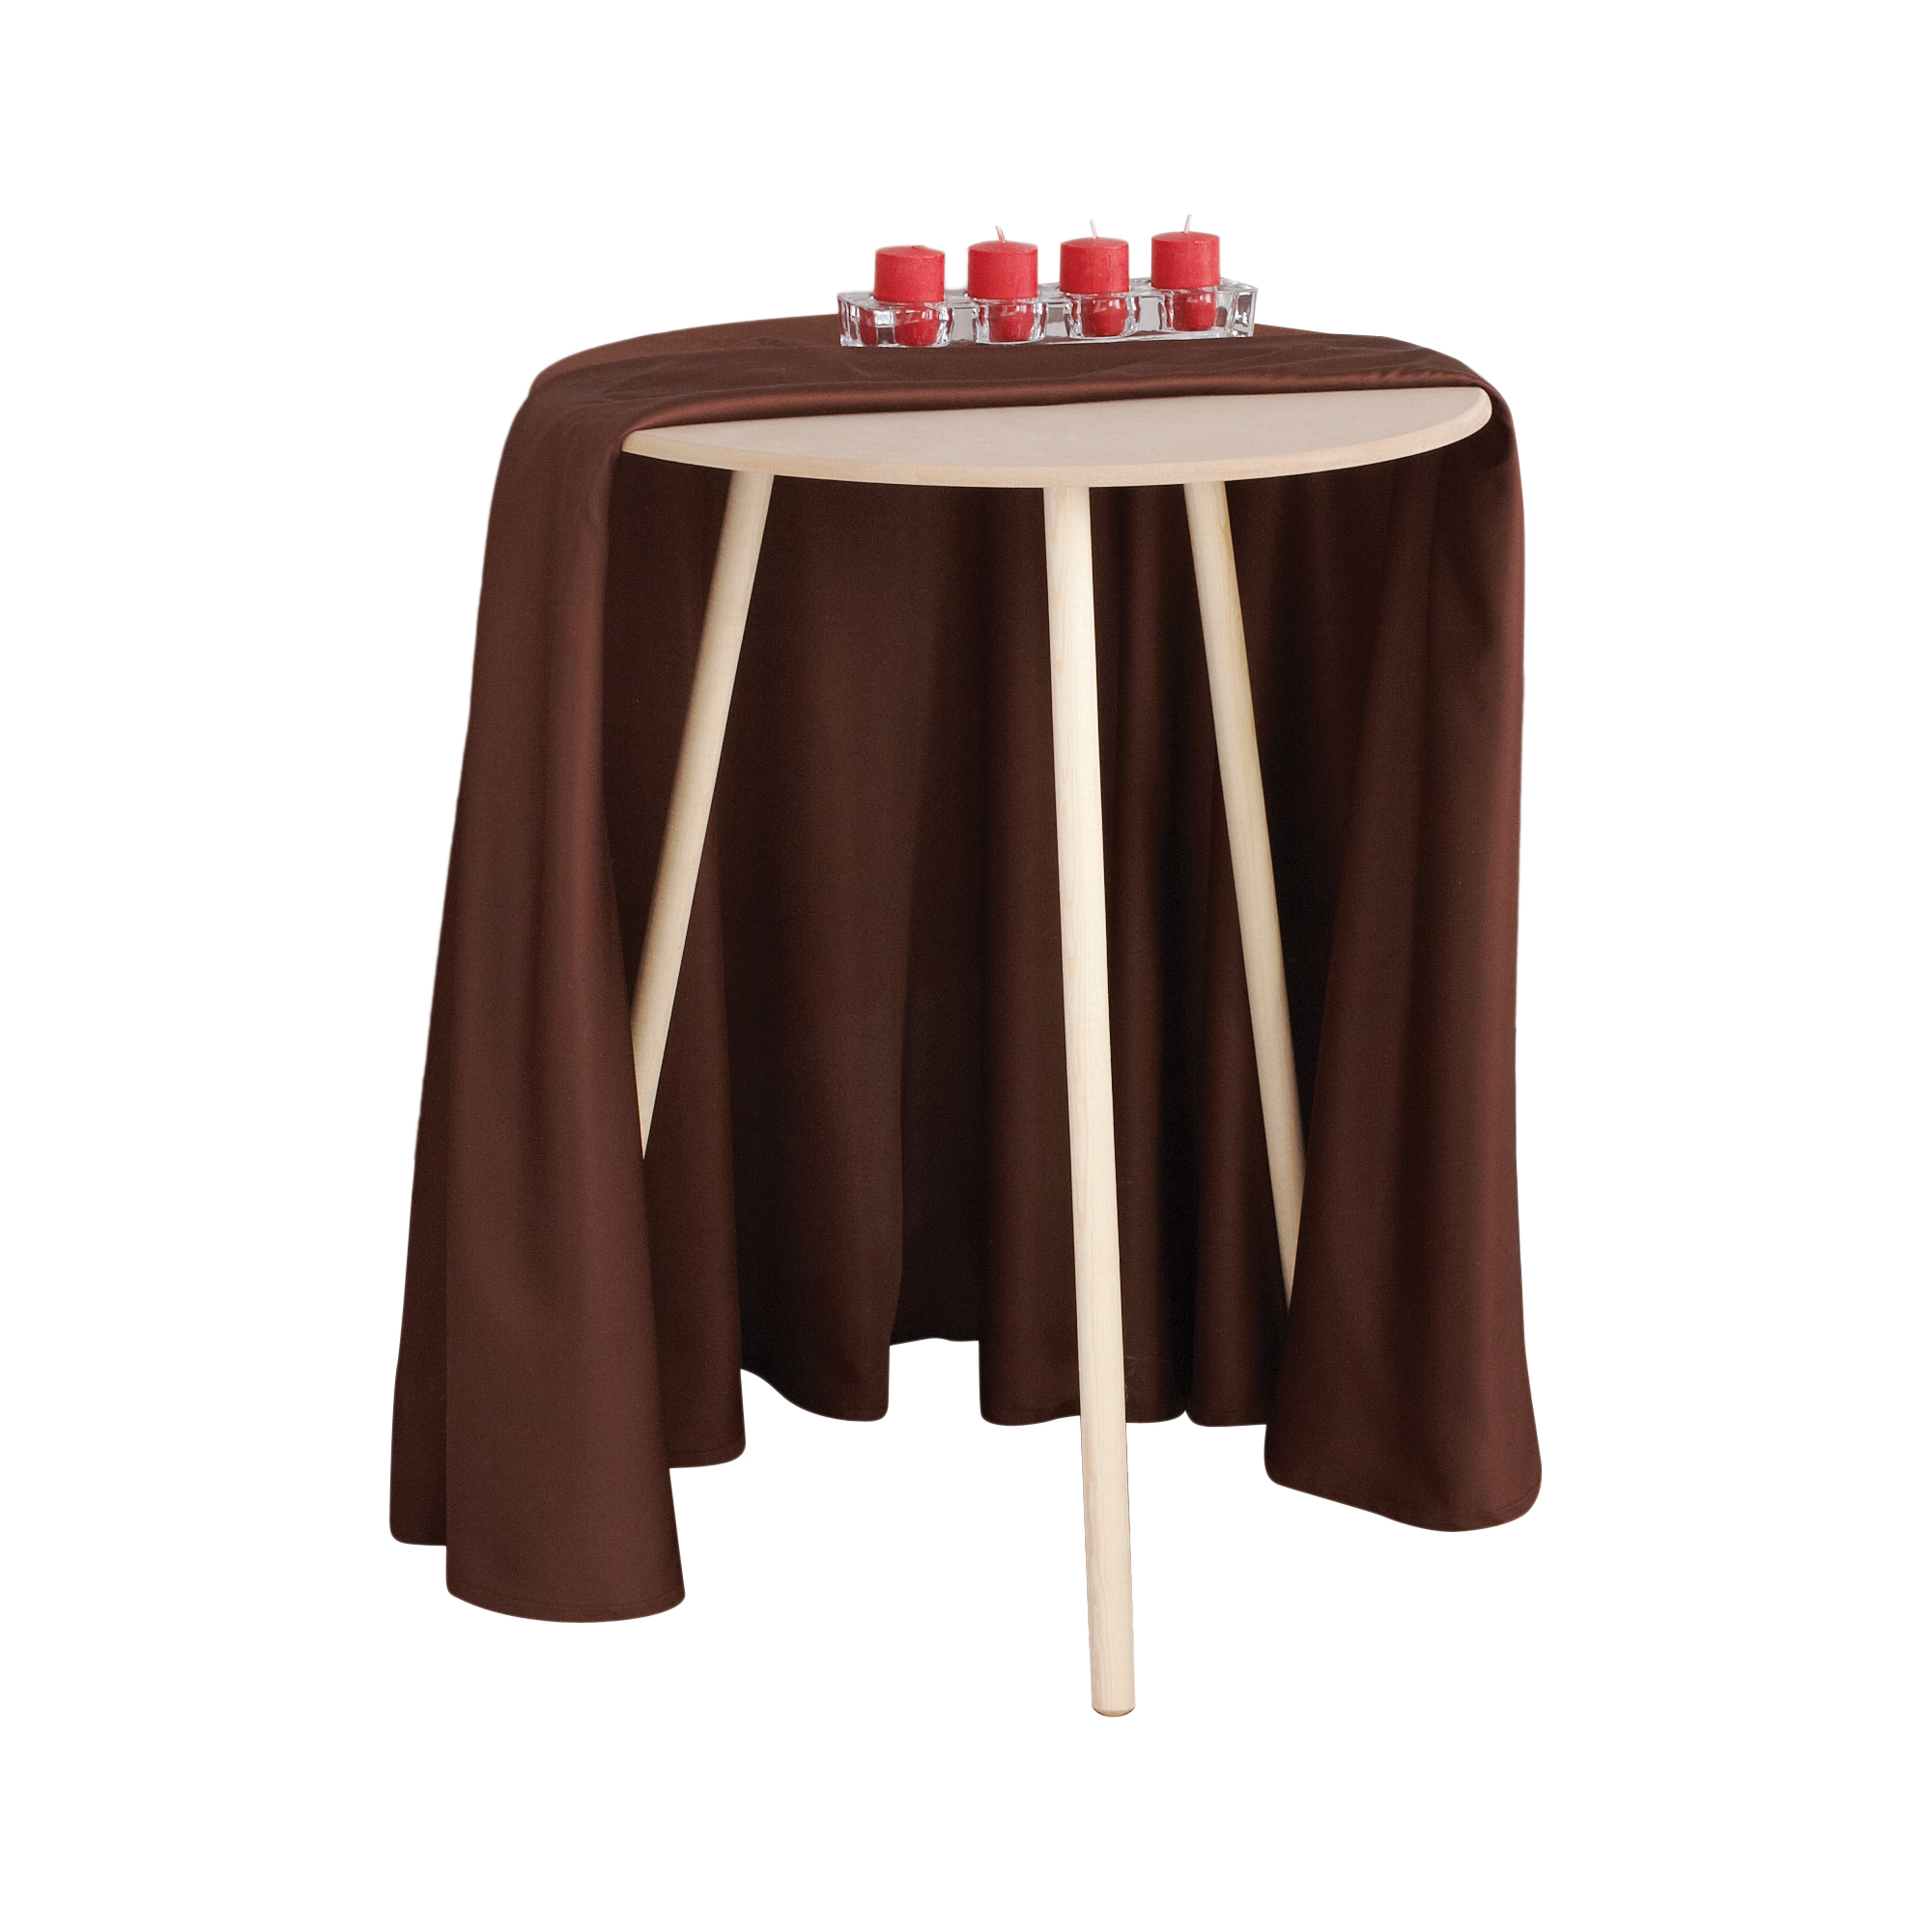 mainstays round decorative table tablecloth for inch accent pottery barn crystal floor lamp hammered brass side pieces dining small chest drawers west elm emmerson corner ikea